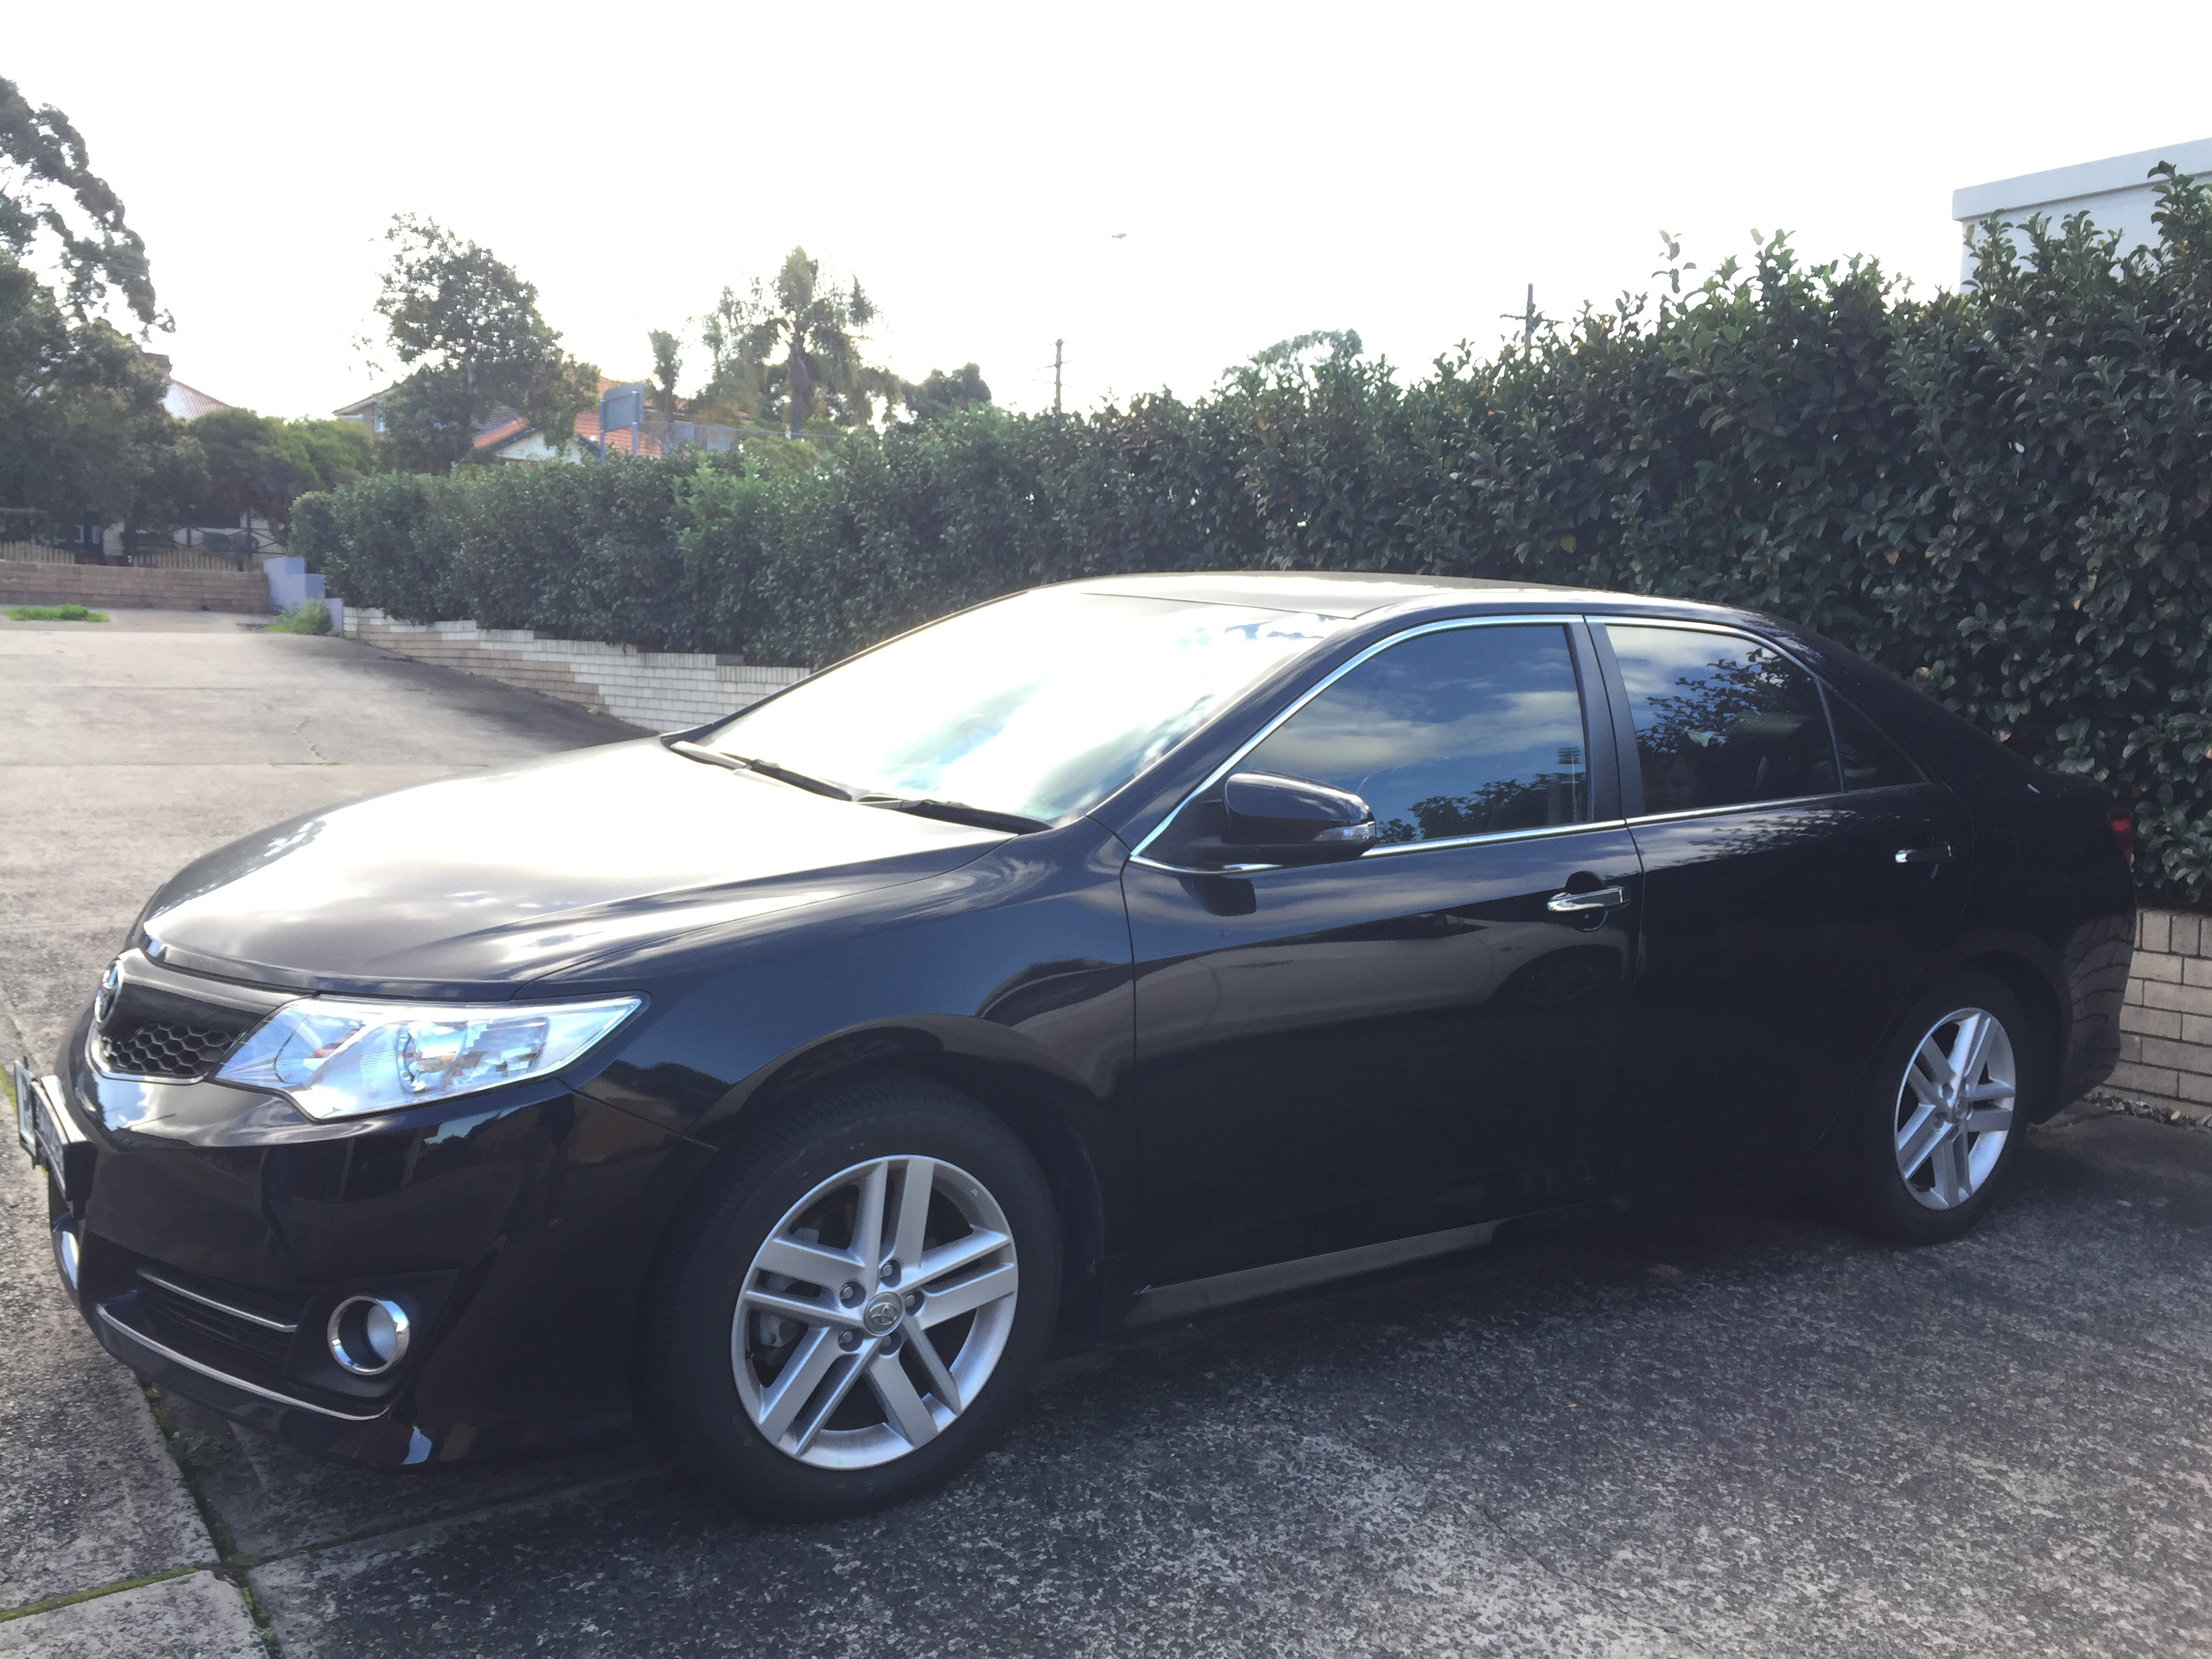 Picture of Sharolyn's 2013 Toyota Camry